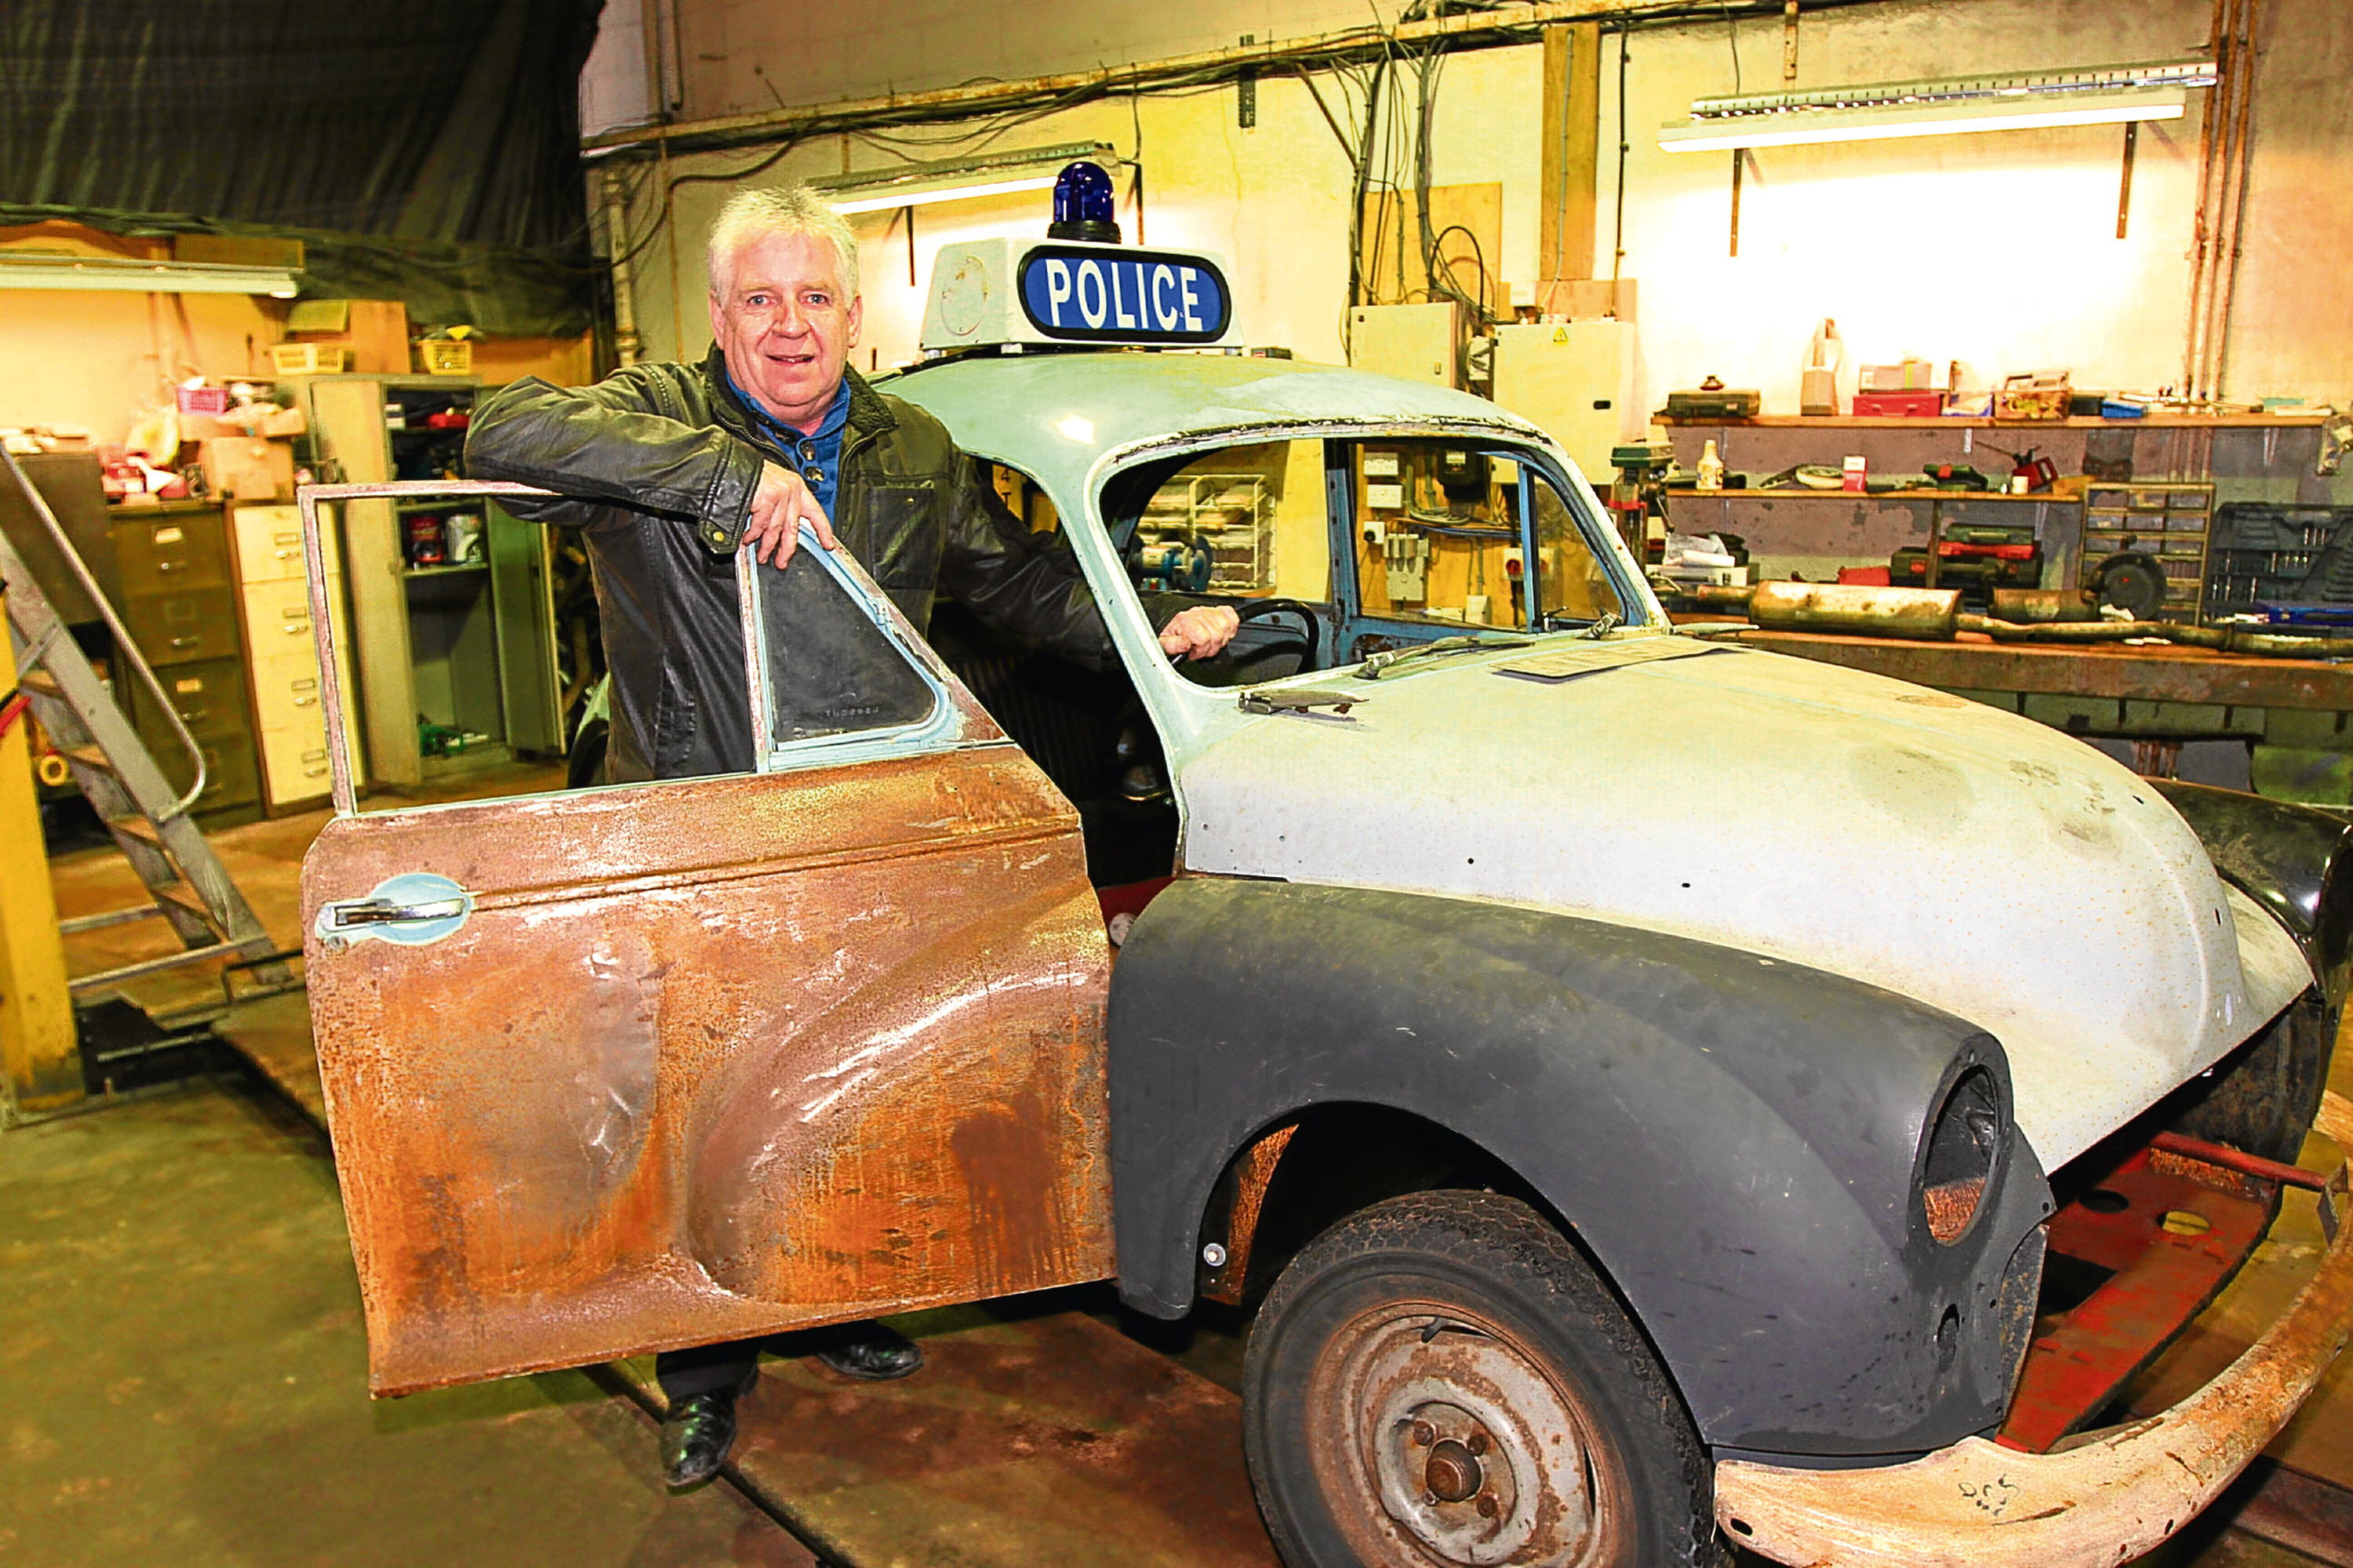 Jim McDonnell at Dundee Museum of Transport where the panda car is being restored.